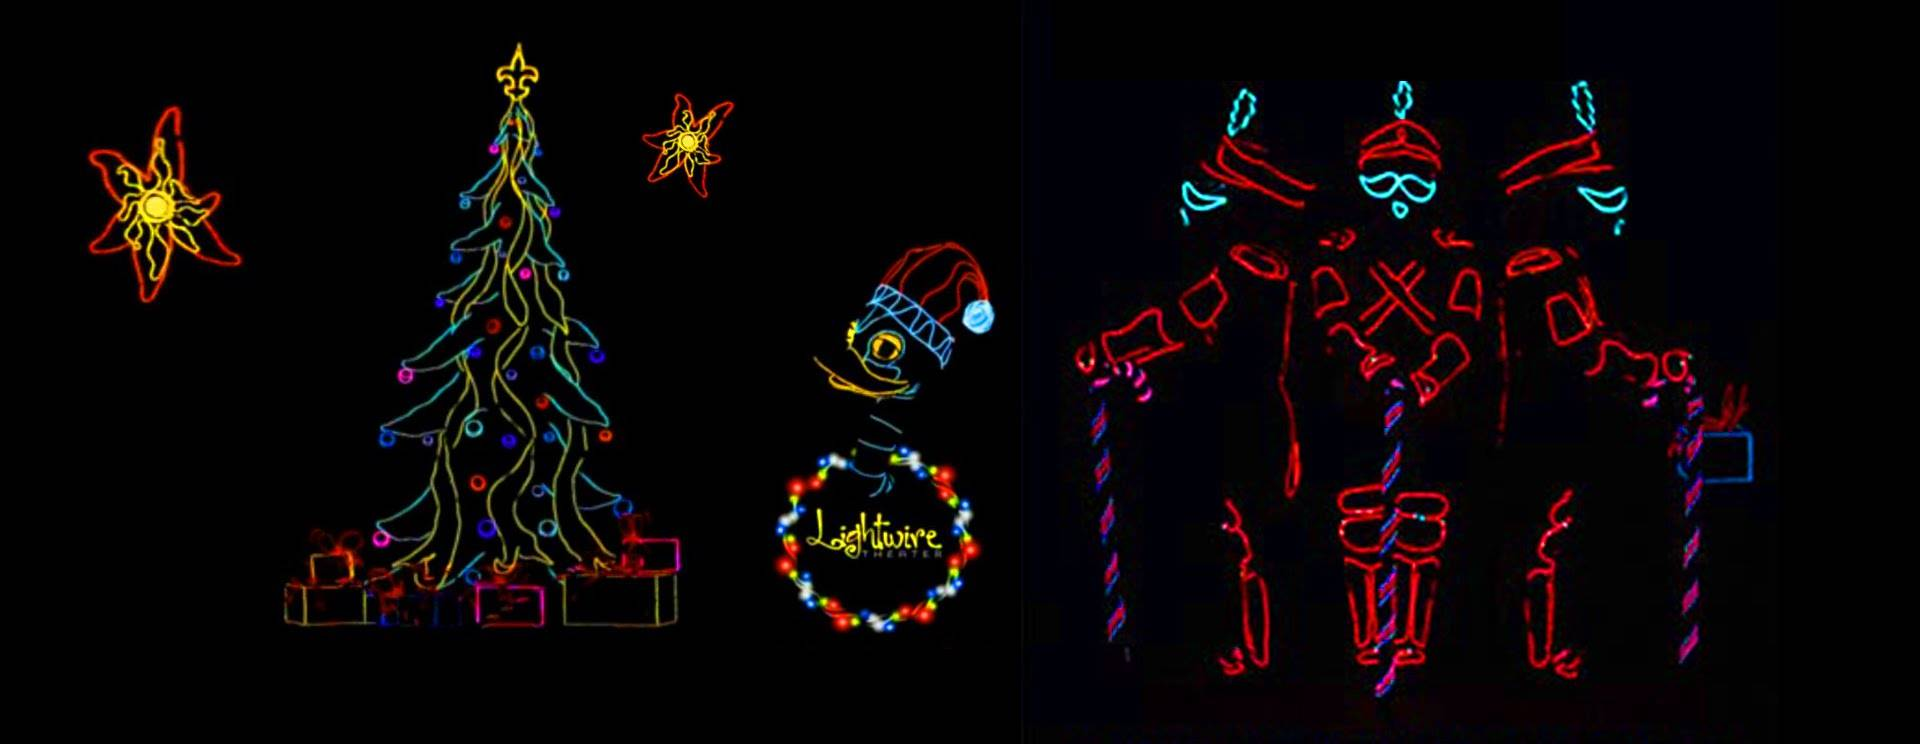 201712/Lightwire-theater-A-very-electric-christmas1.jpg